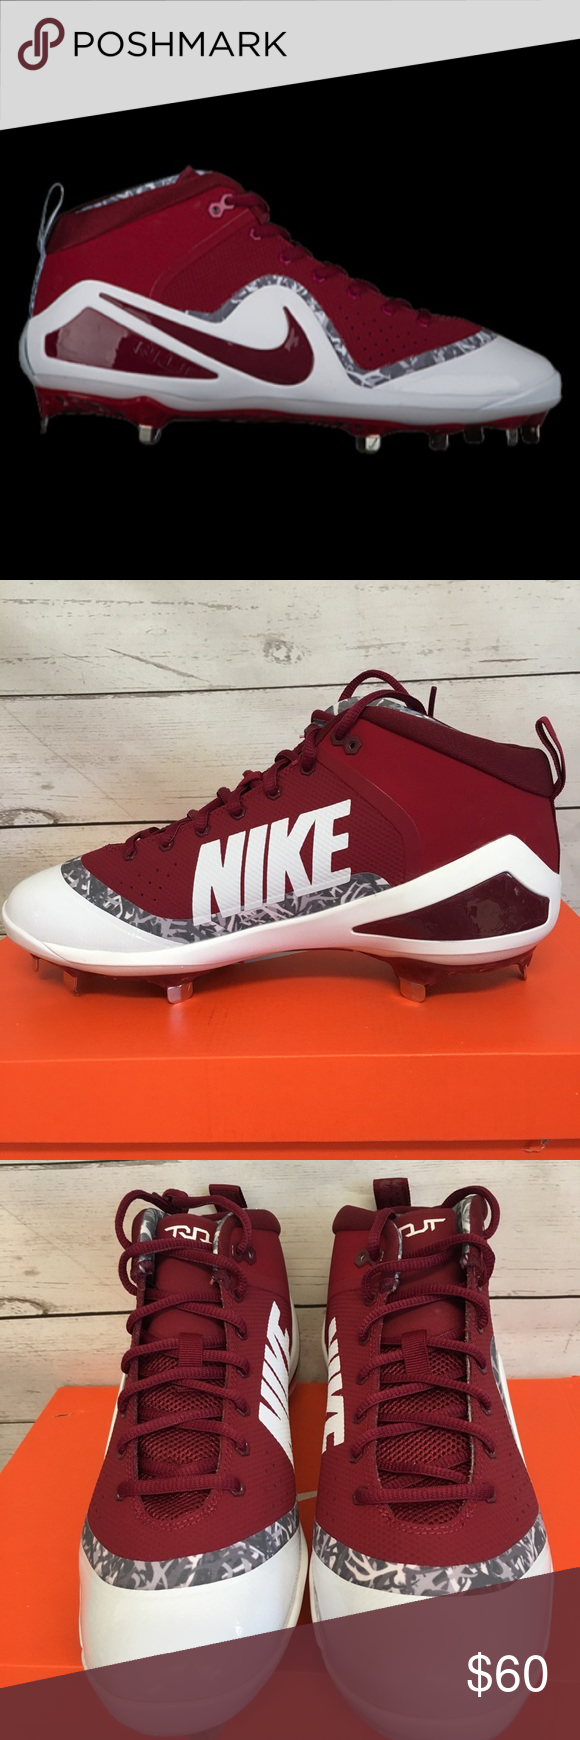 the best attitude d05e7 e97c0 Nike Force Zoom Trout 4 Baseball Metal Cleats Nike Mens Size 10.5 Force  Zoom Trout 4